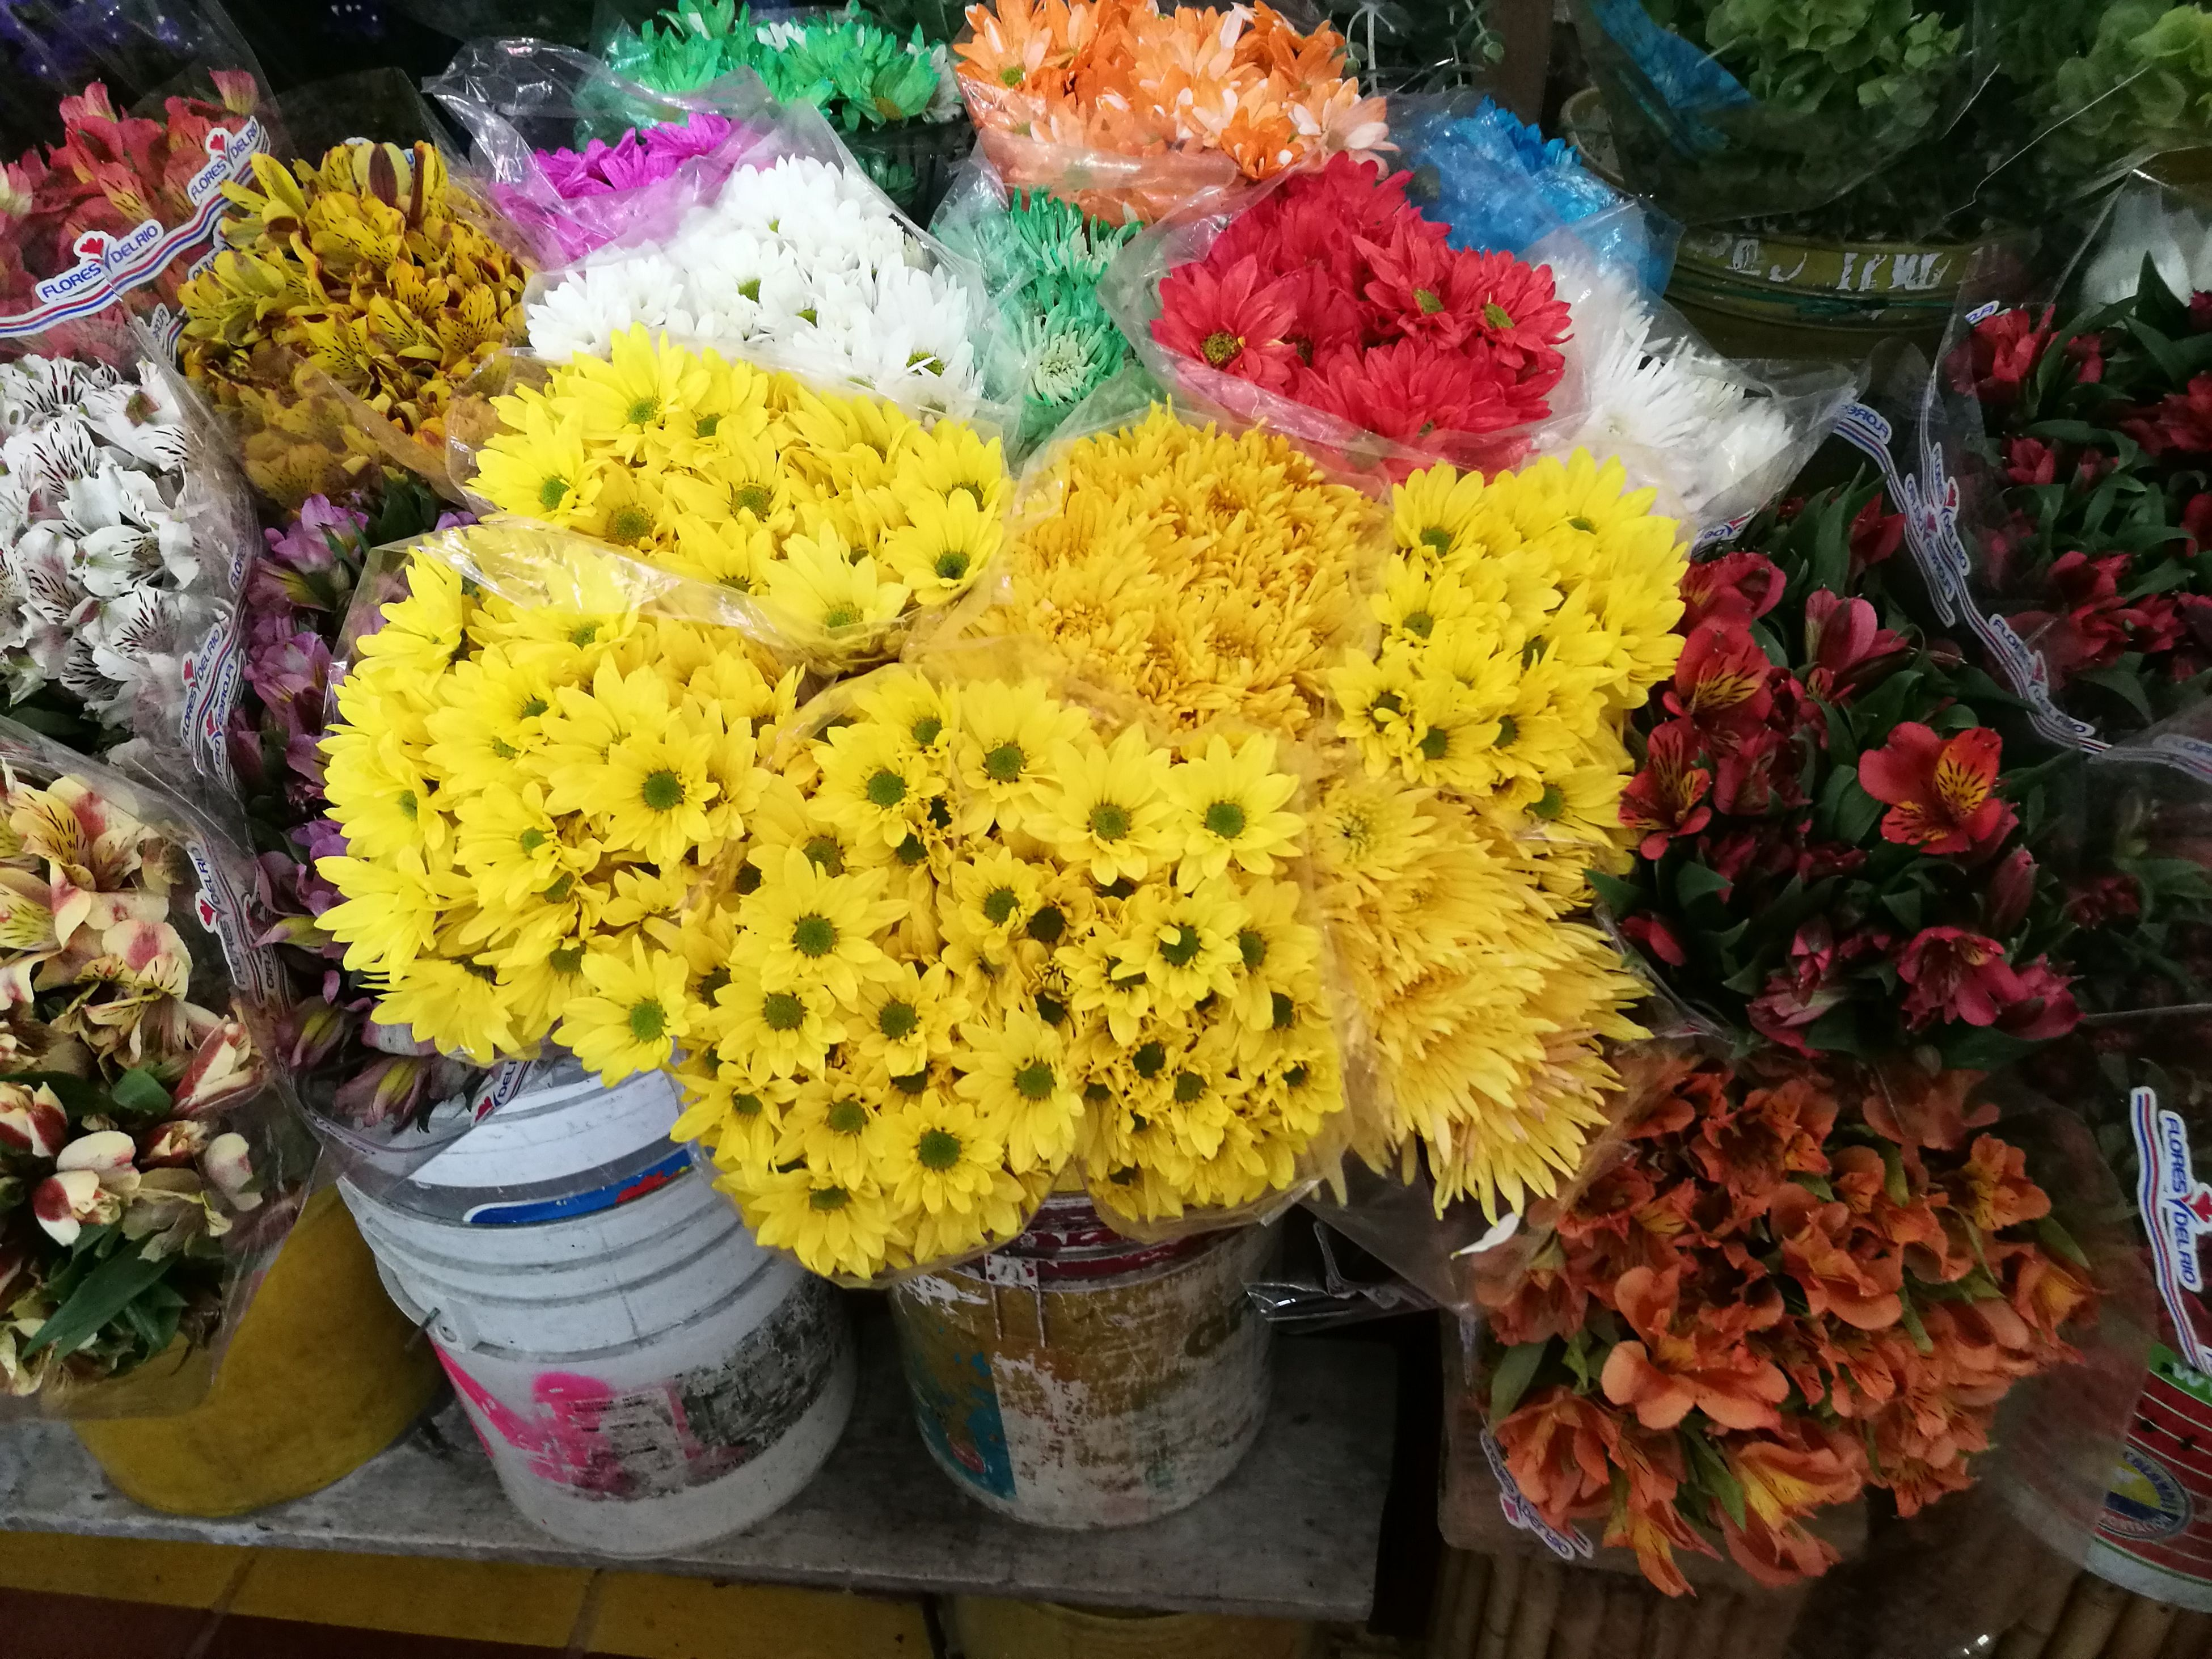 flower, fragility, multi colored, freshness, yellow, high angle view, marigold, flower head, beauty in nature, for sale, flower market, petal, no people, variation, nature, market, day, floral garland, outdoors, close-up